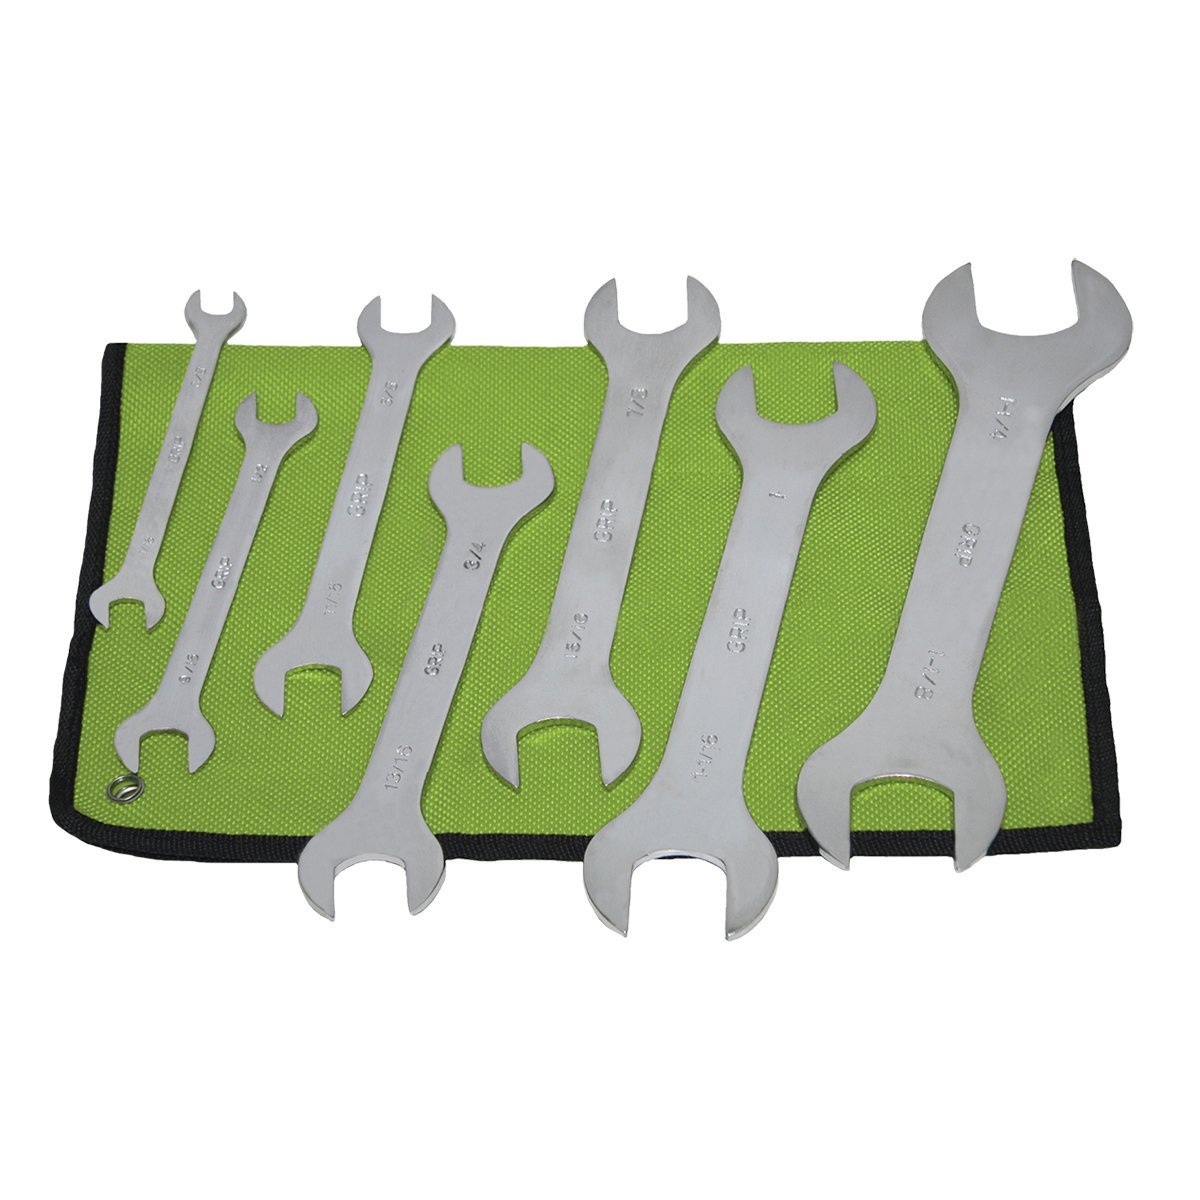 V-8 Tools V8T8307 Wrench Set 7 Piece Super Thin